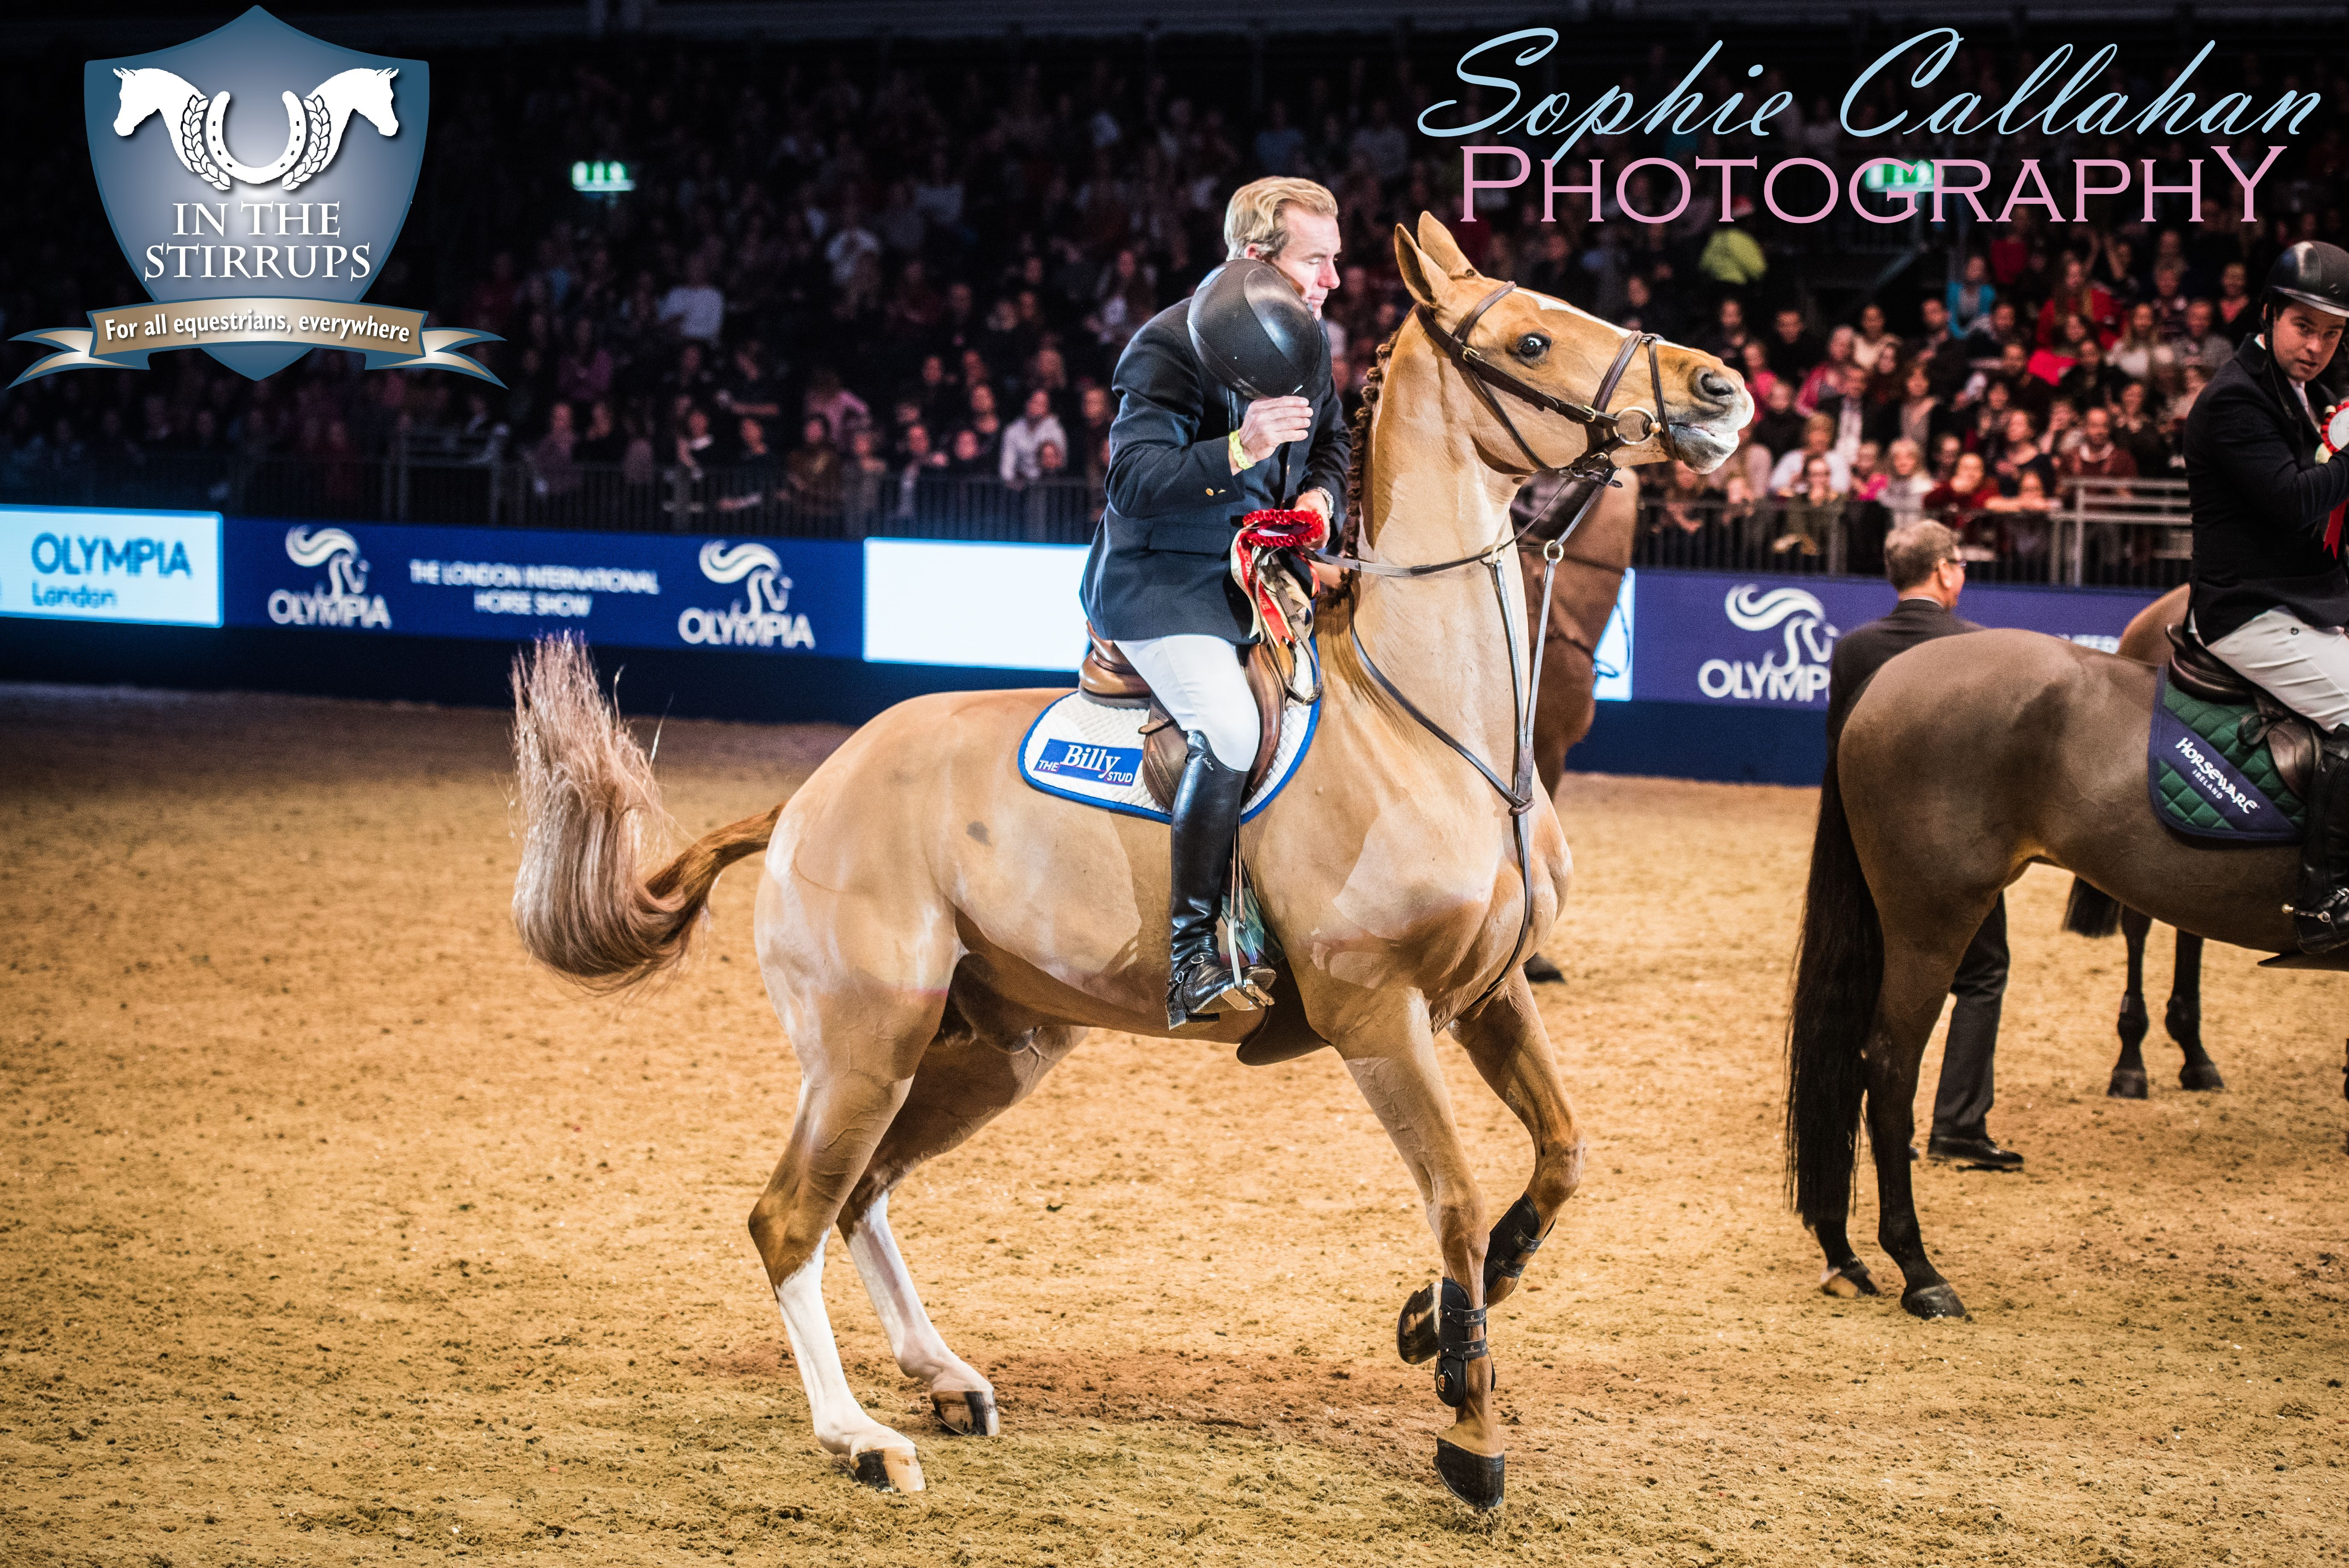 Olympia 2016, by Specialist UK Equine Portrait Photographer, Essex I equine photography equine blogger